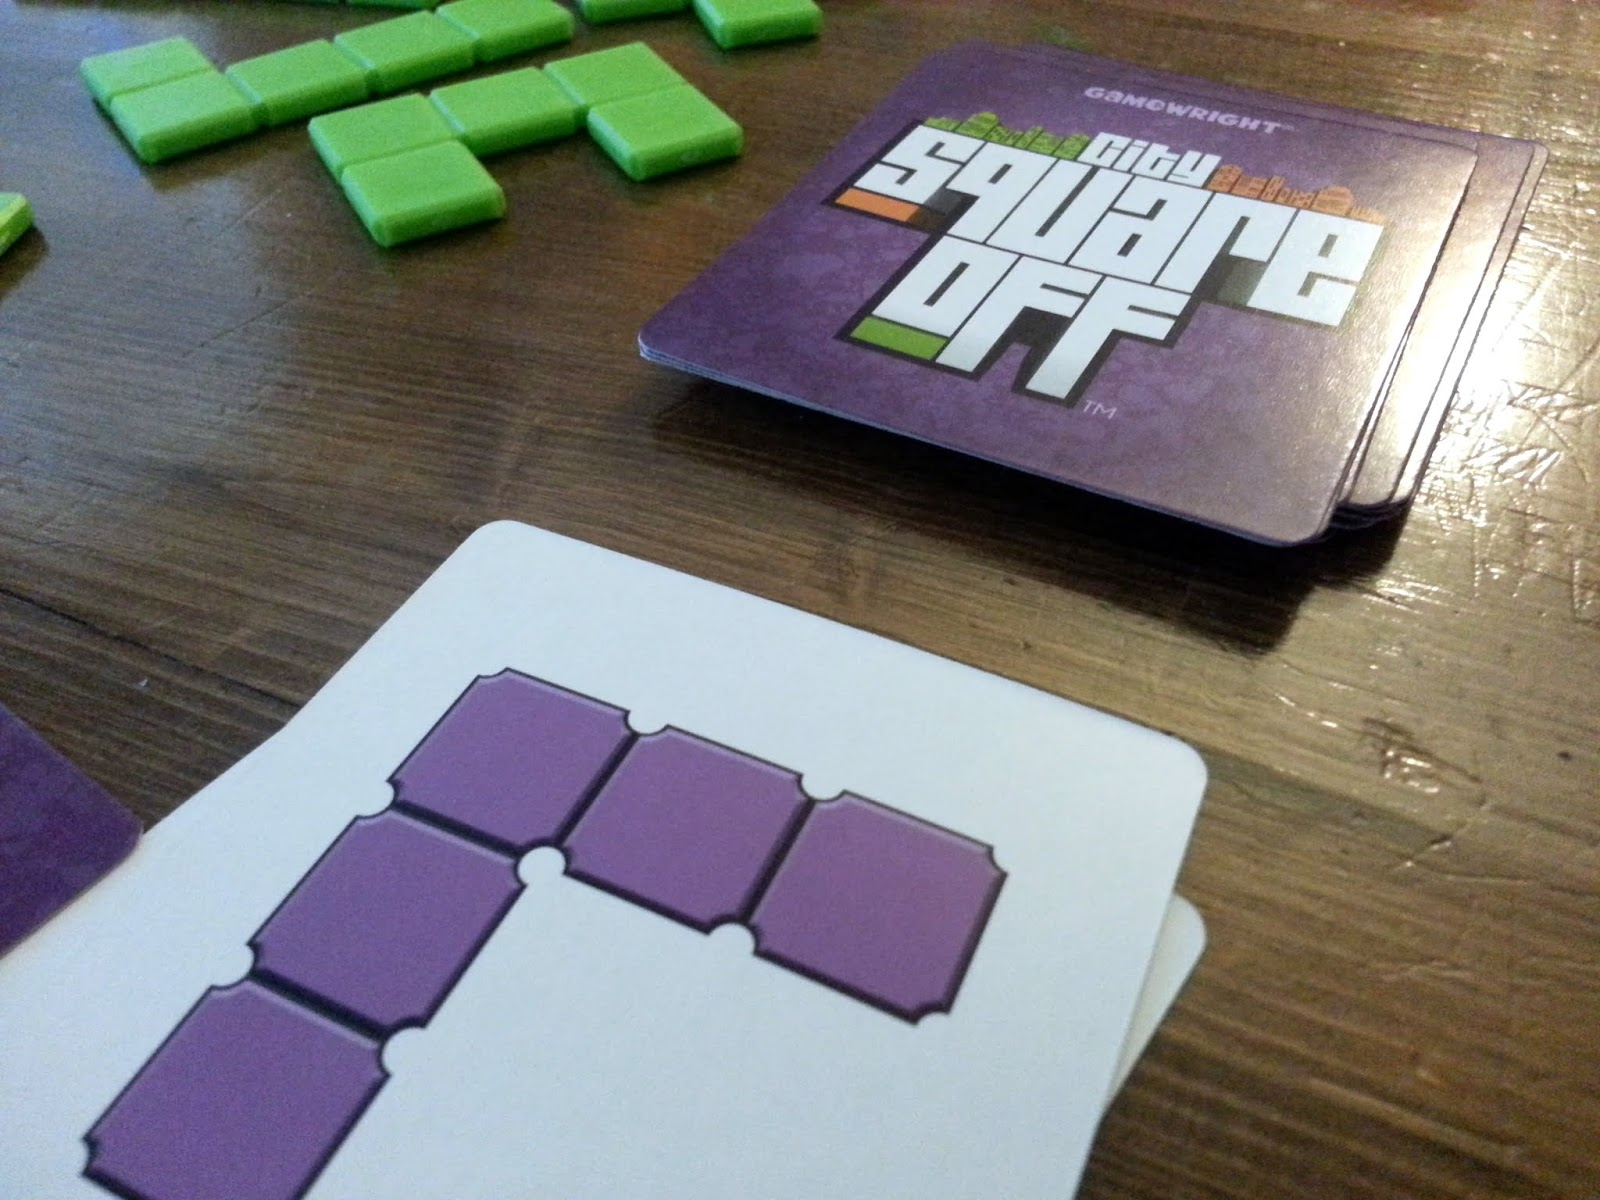 in the grid edgeplay a review of four clubs